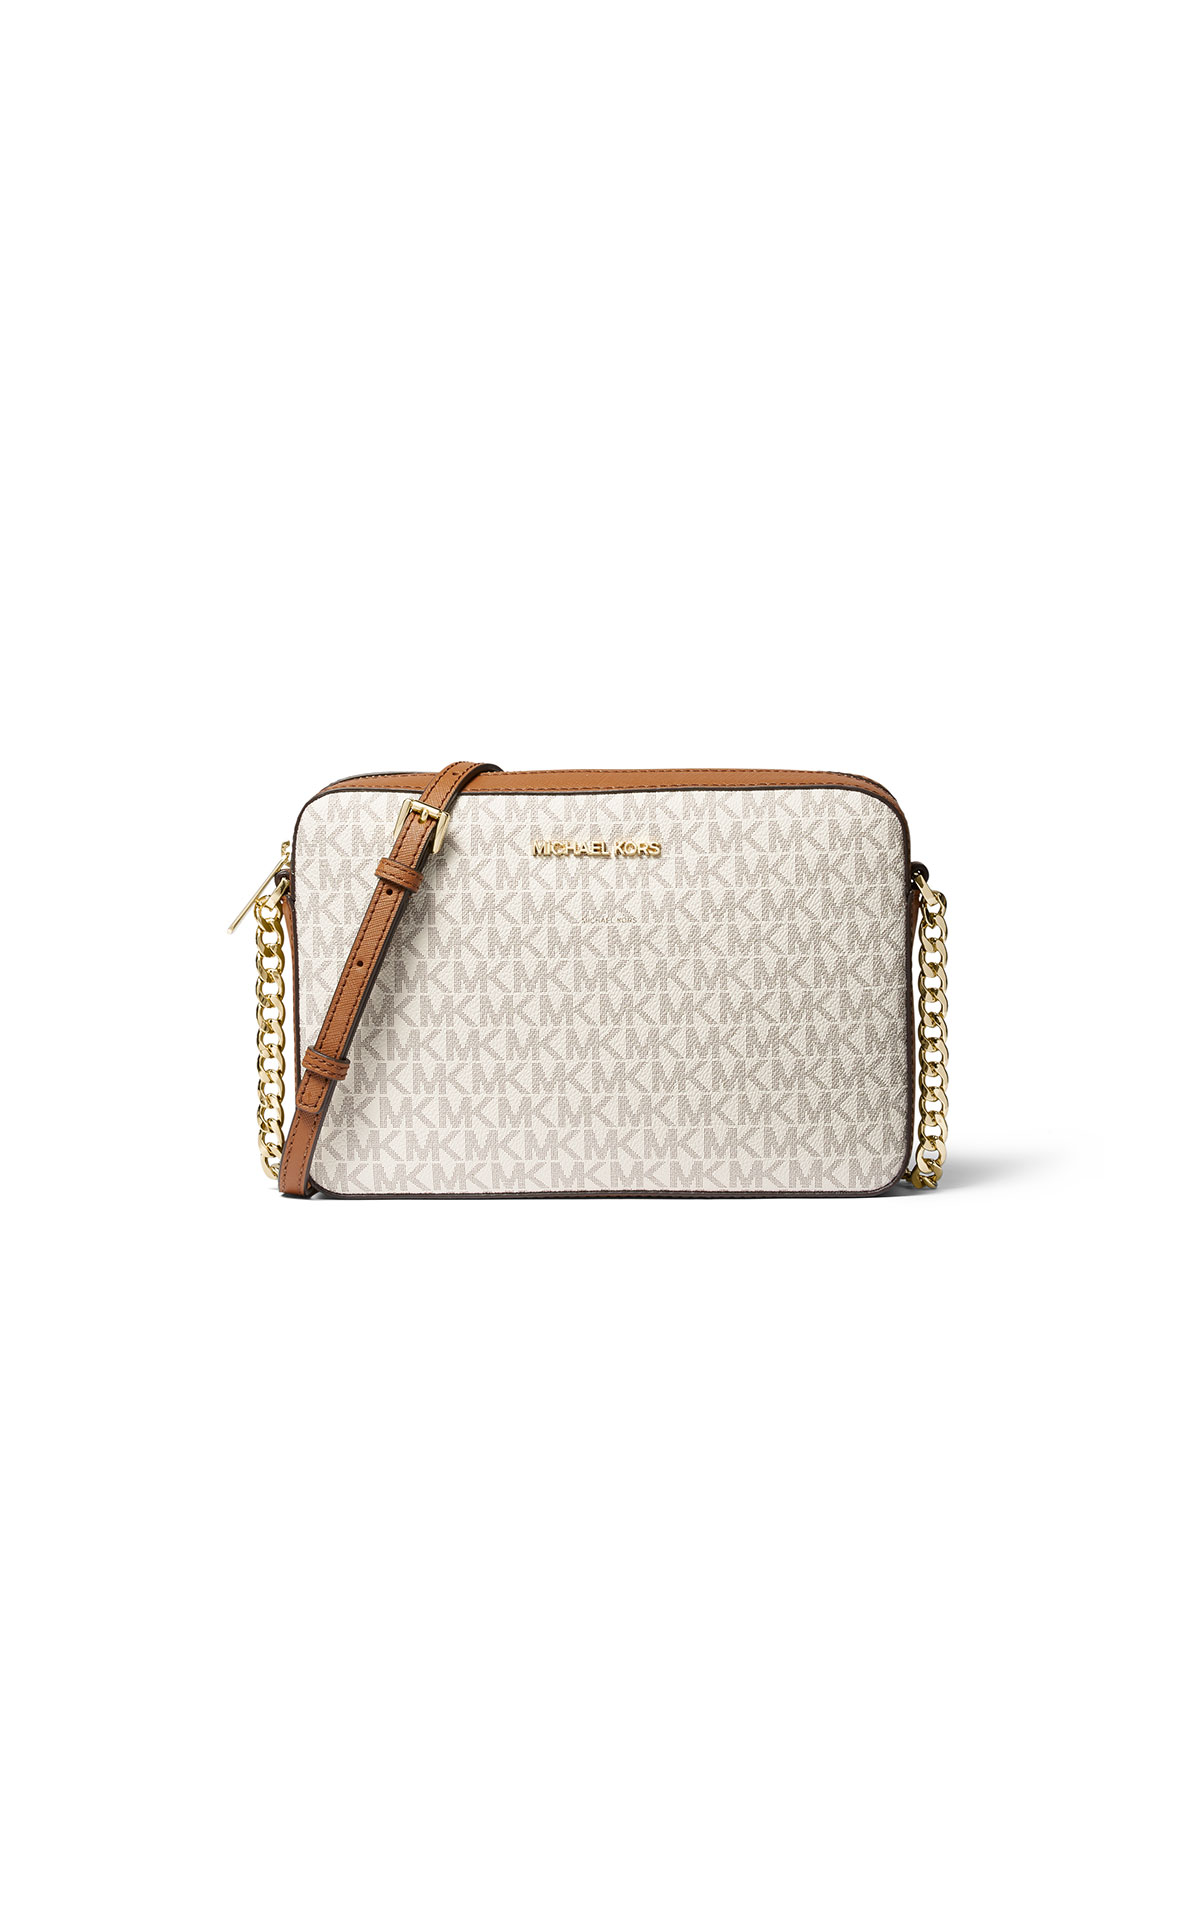 Michael Kors jet set logo crossbody at The Bicester Village Shopping Collection